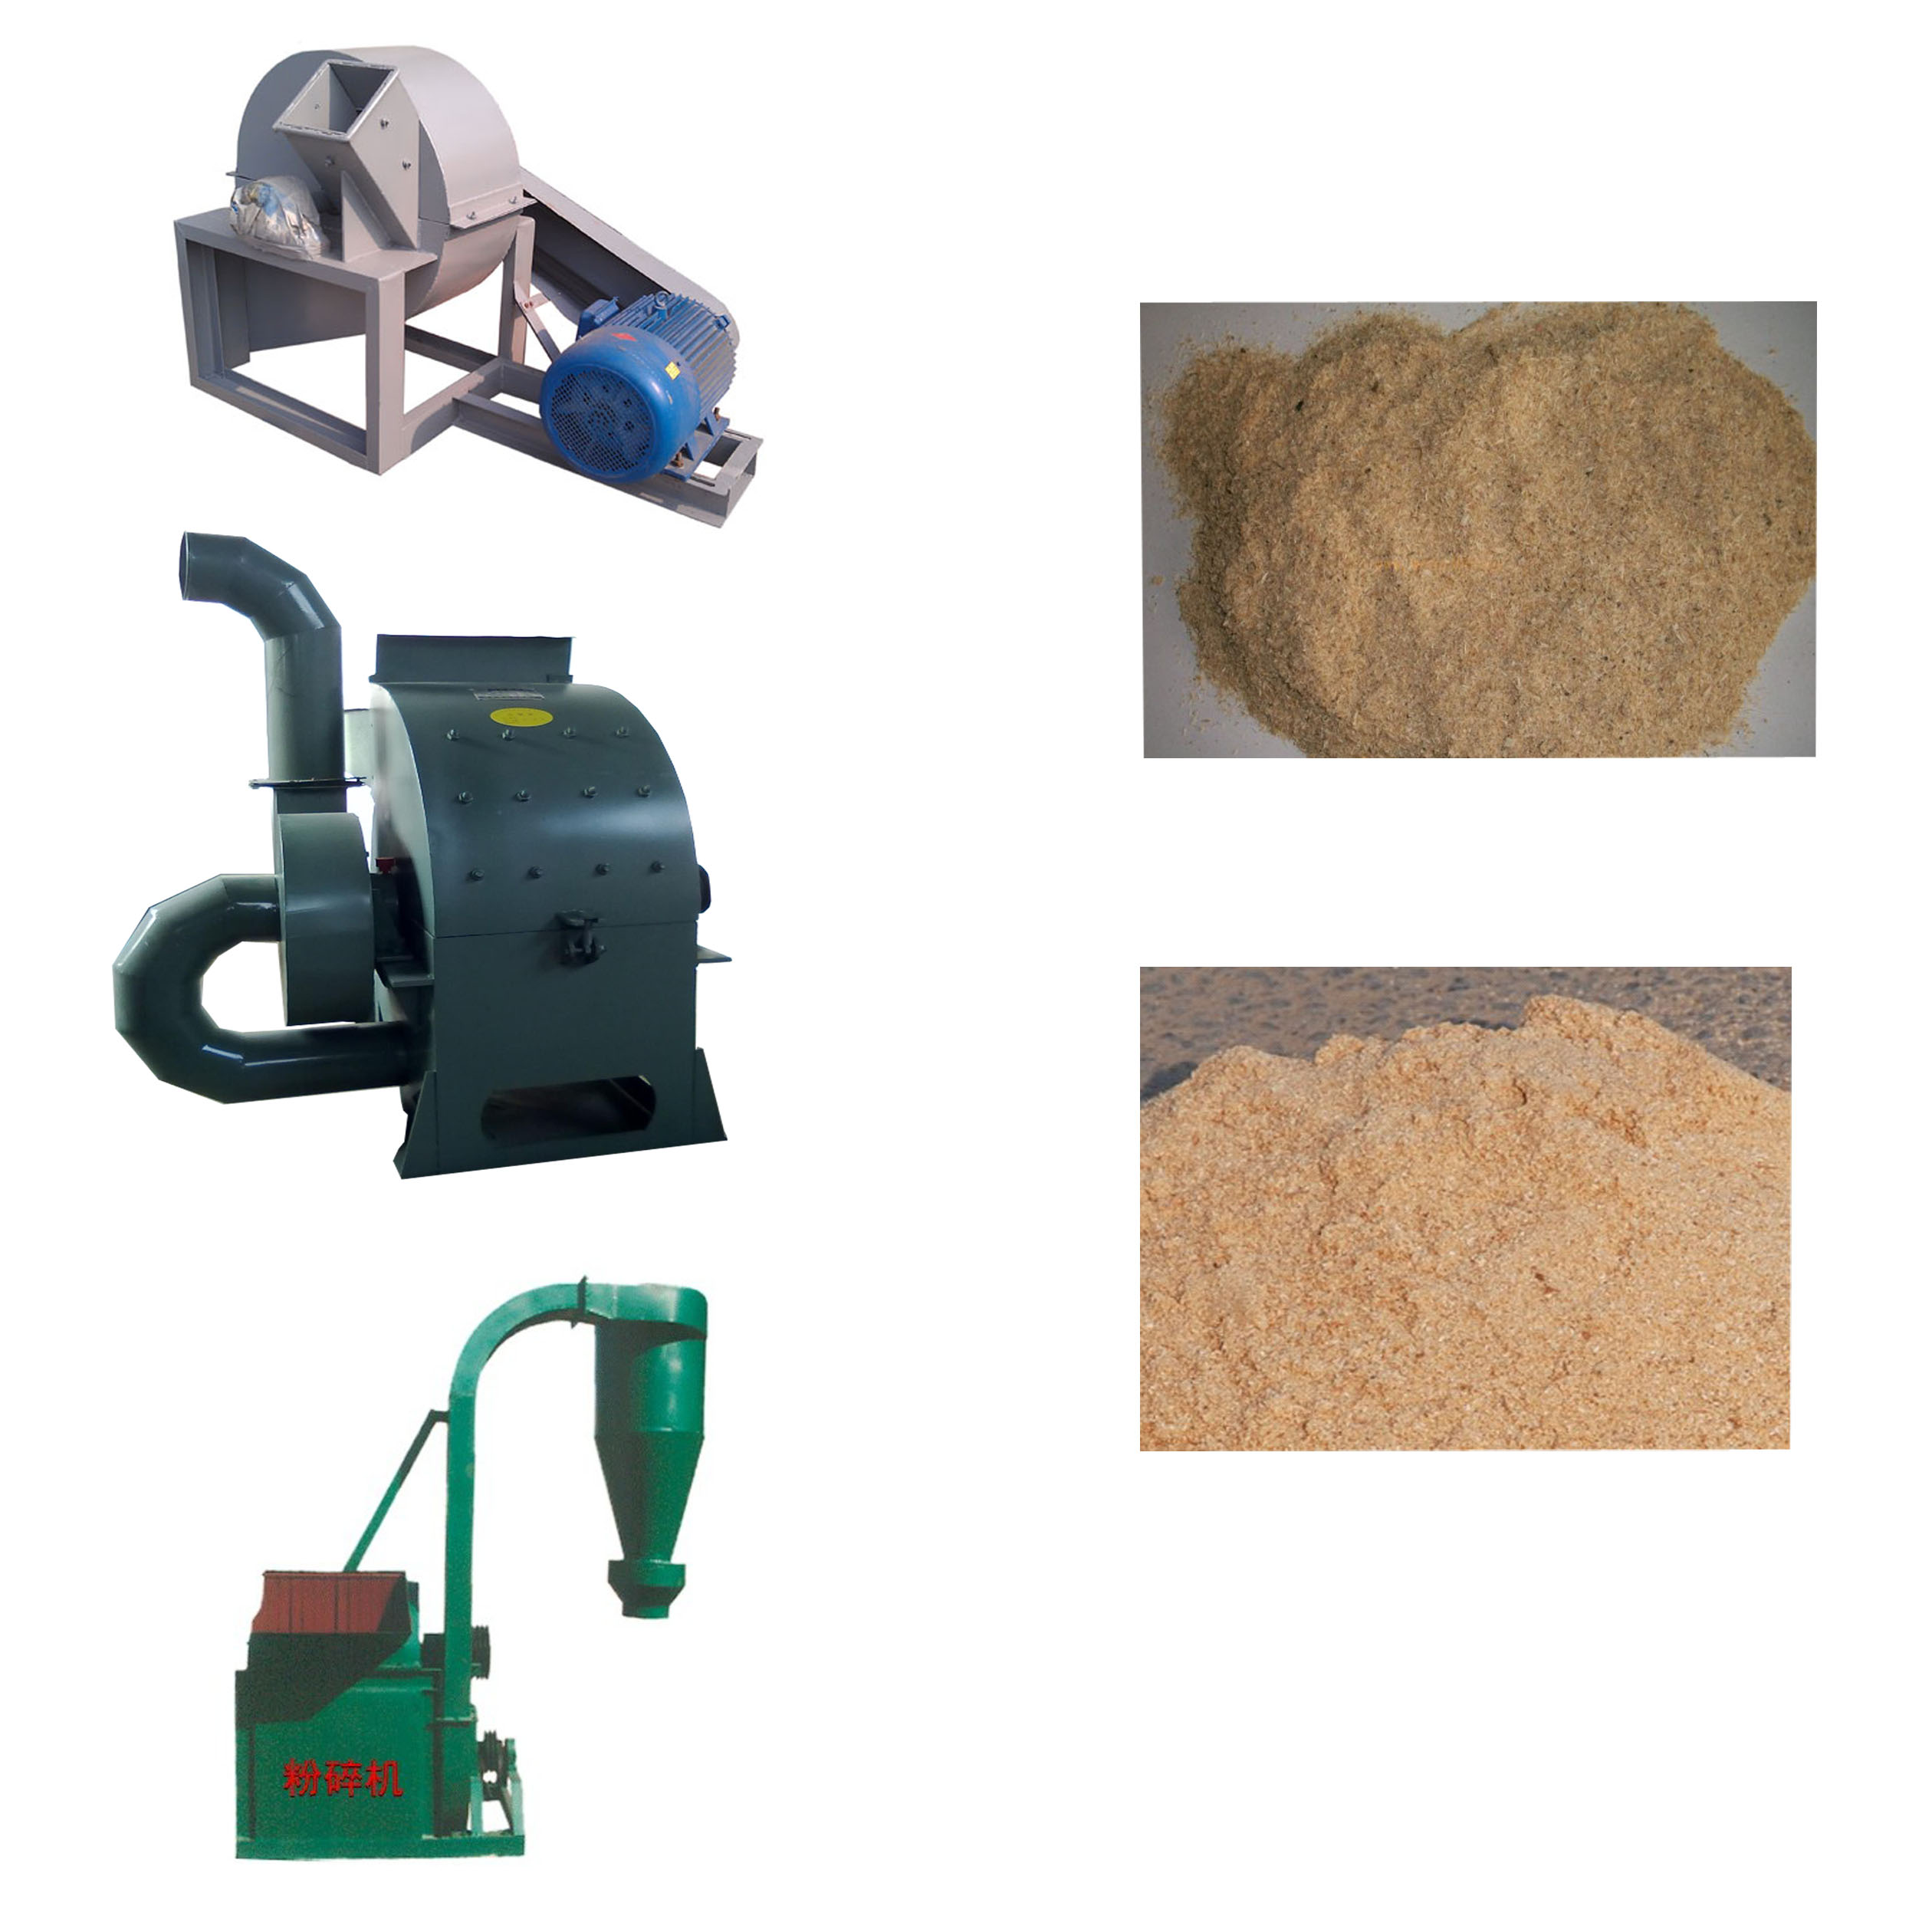 Woodchips Crusher|Straw Crusher|Wood Cutter|Woodchips crusher|Crusher